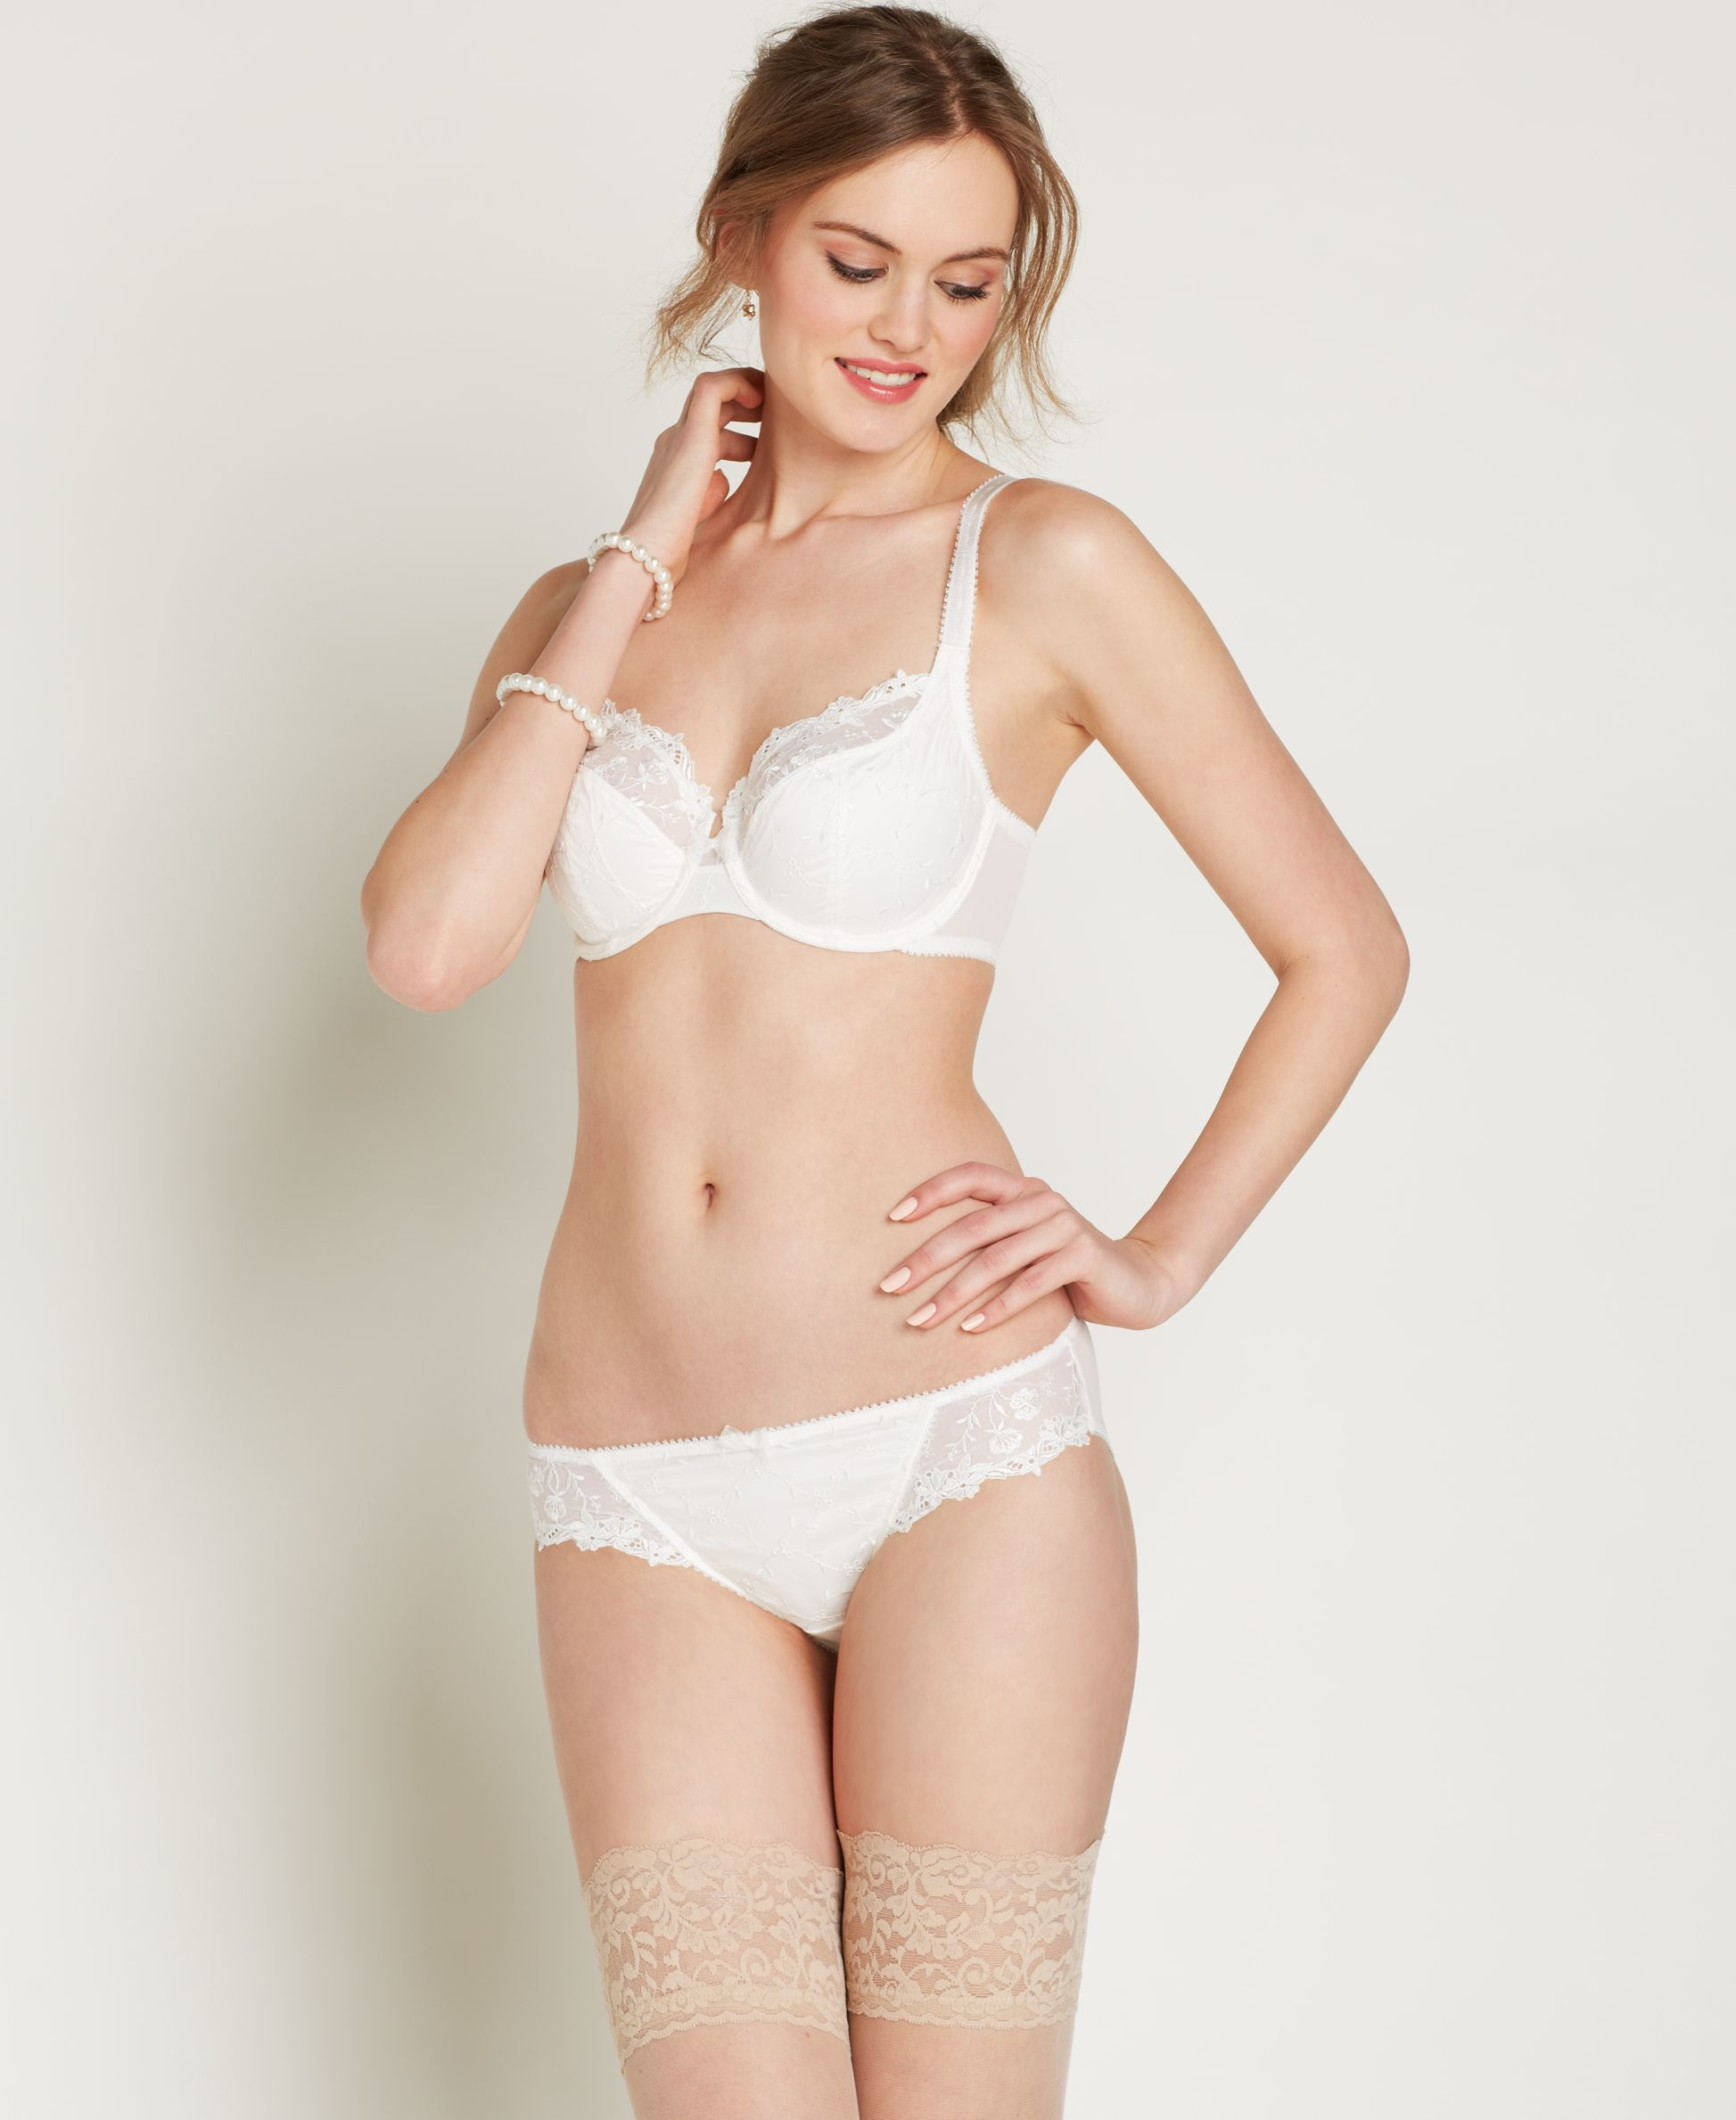 Lunaire Whimsy By Saint Croix Underwire Bra 10111 in White | Lyst